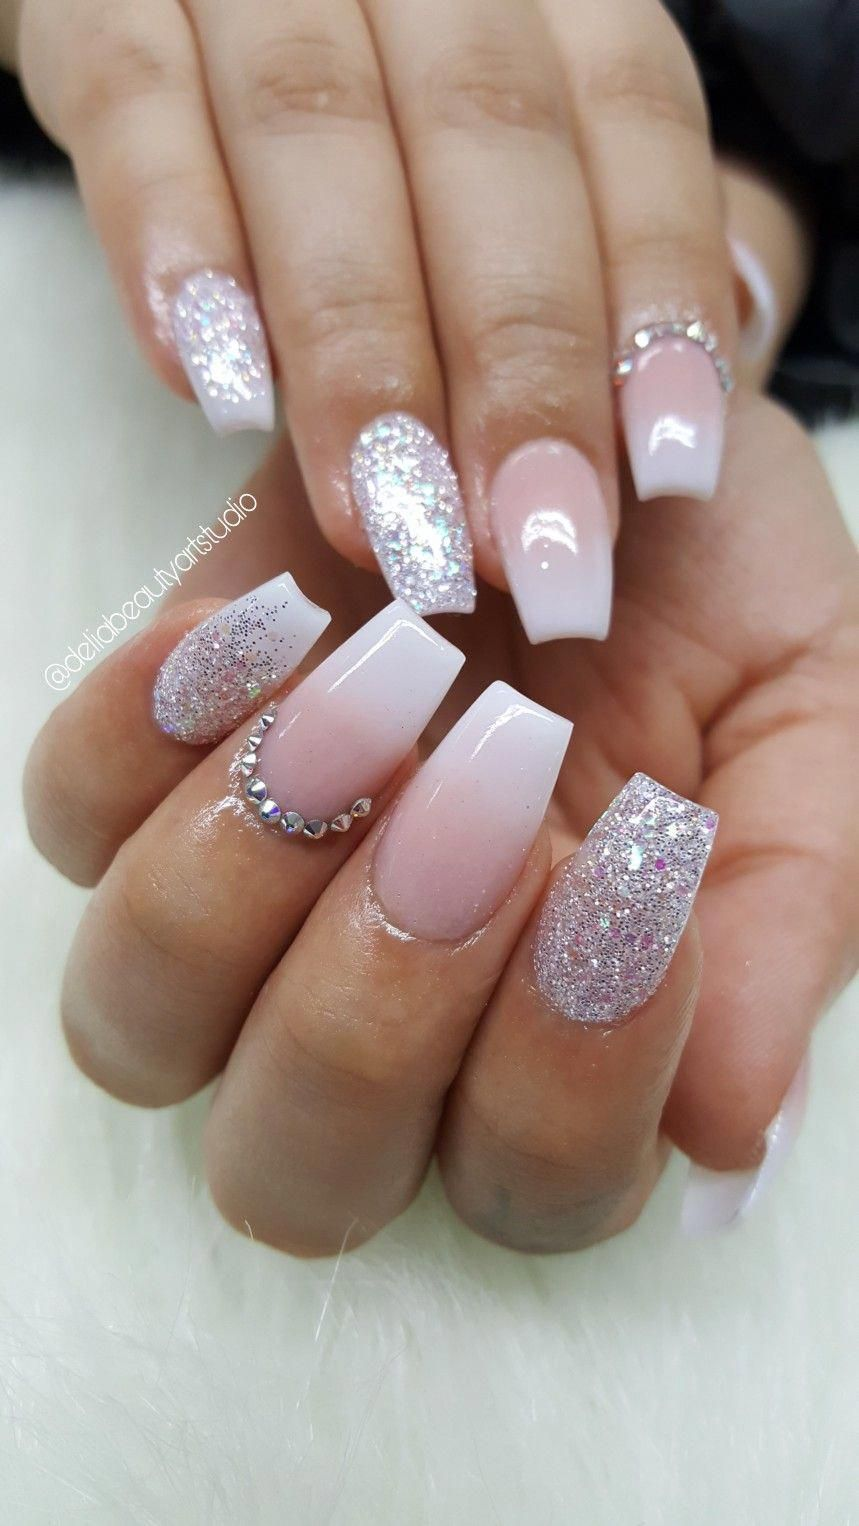 Ombre acrylic nails, coffin shape acrylicnails